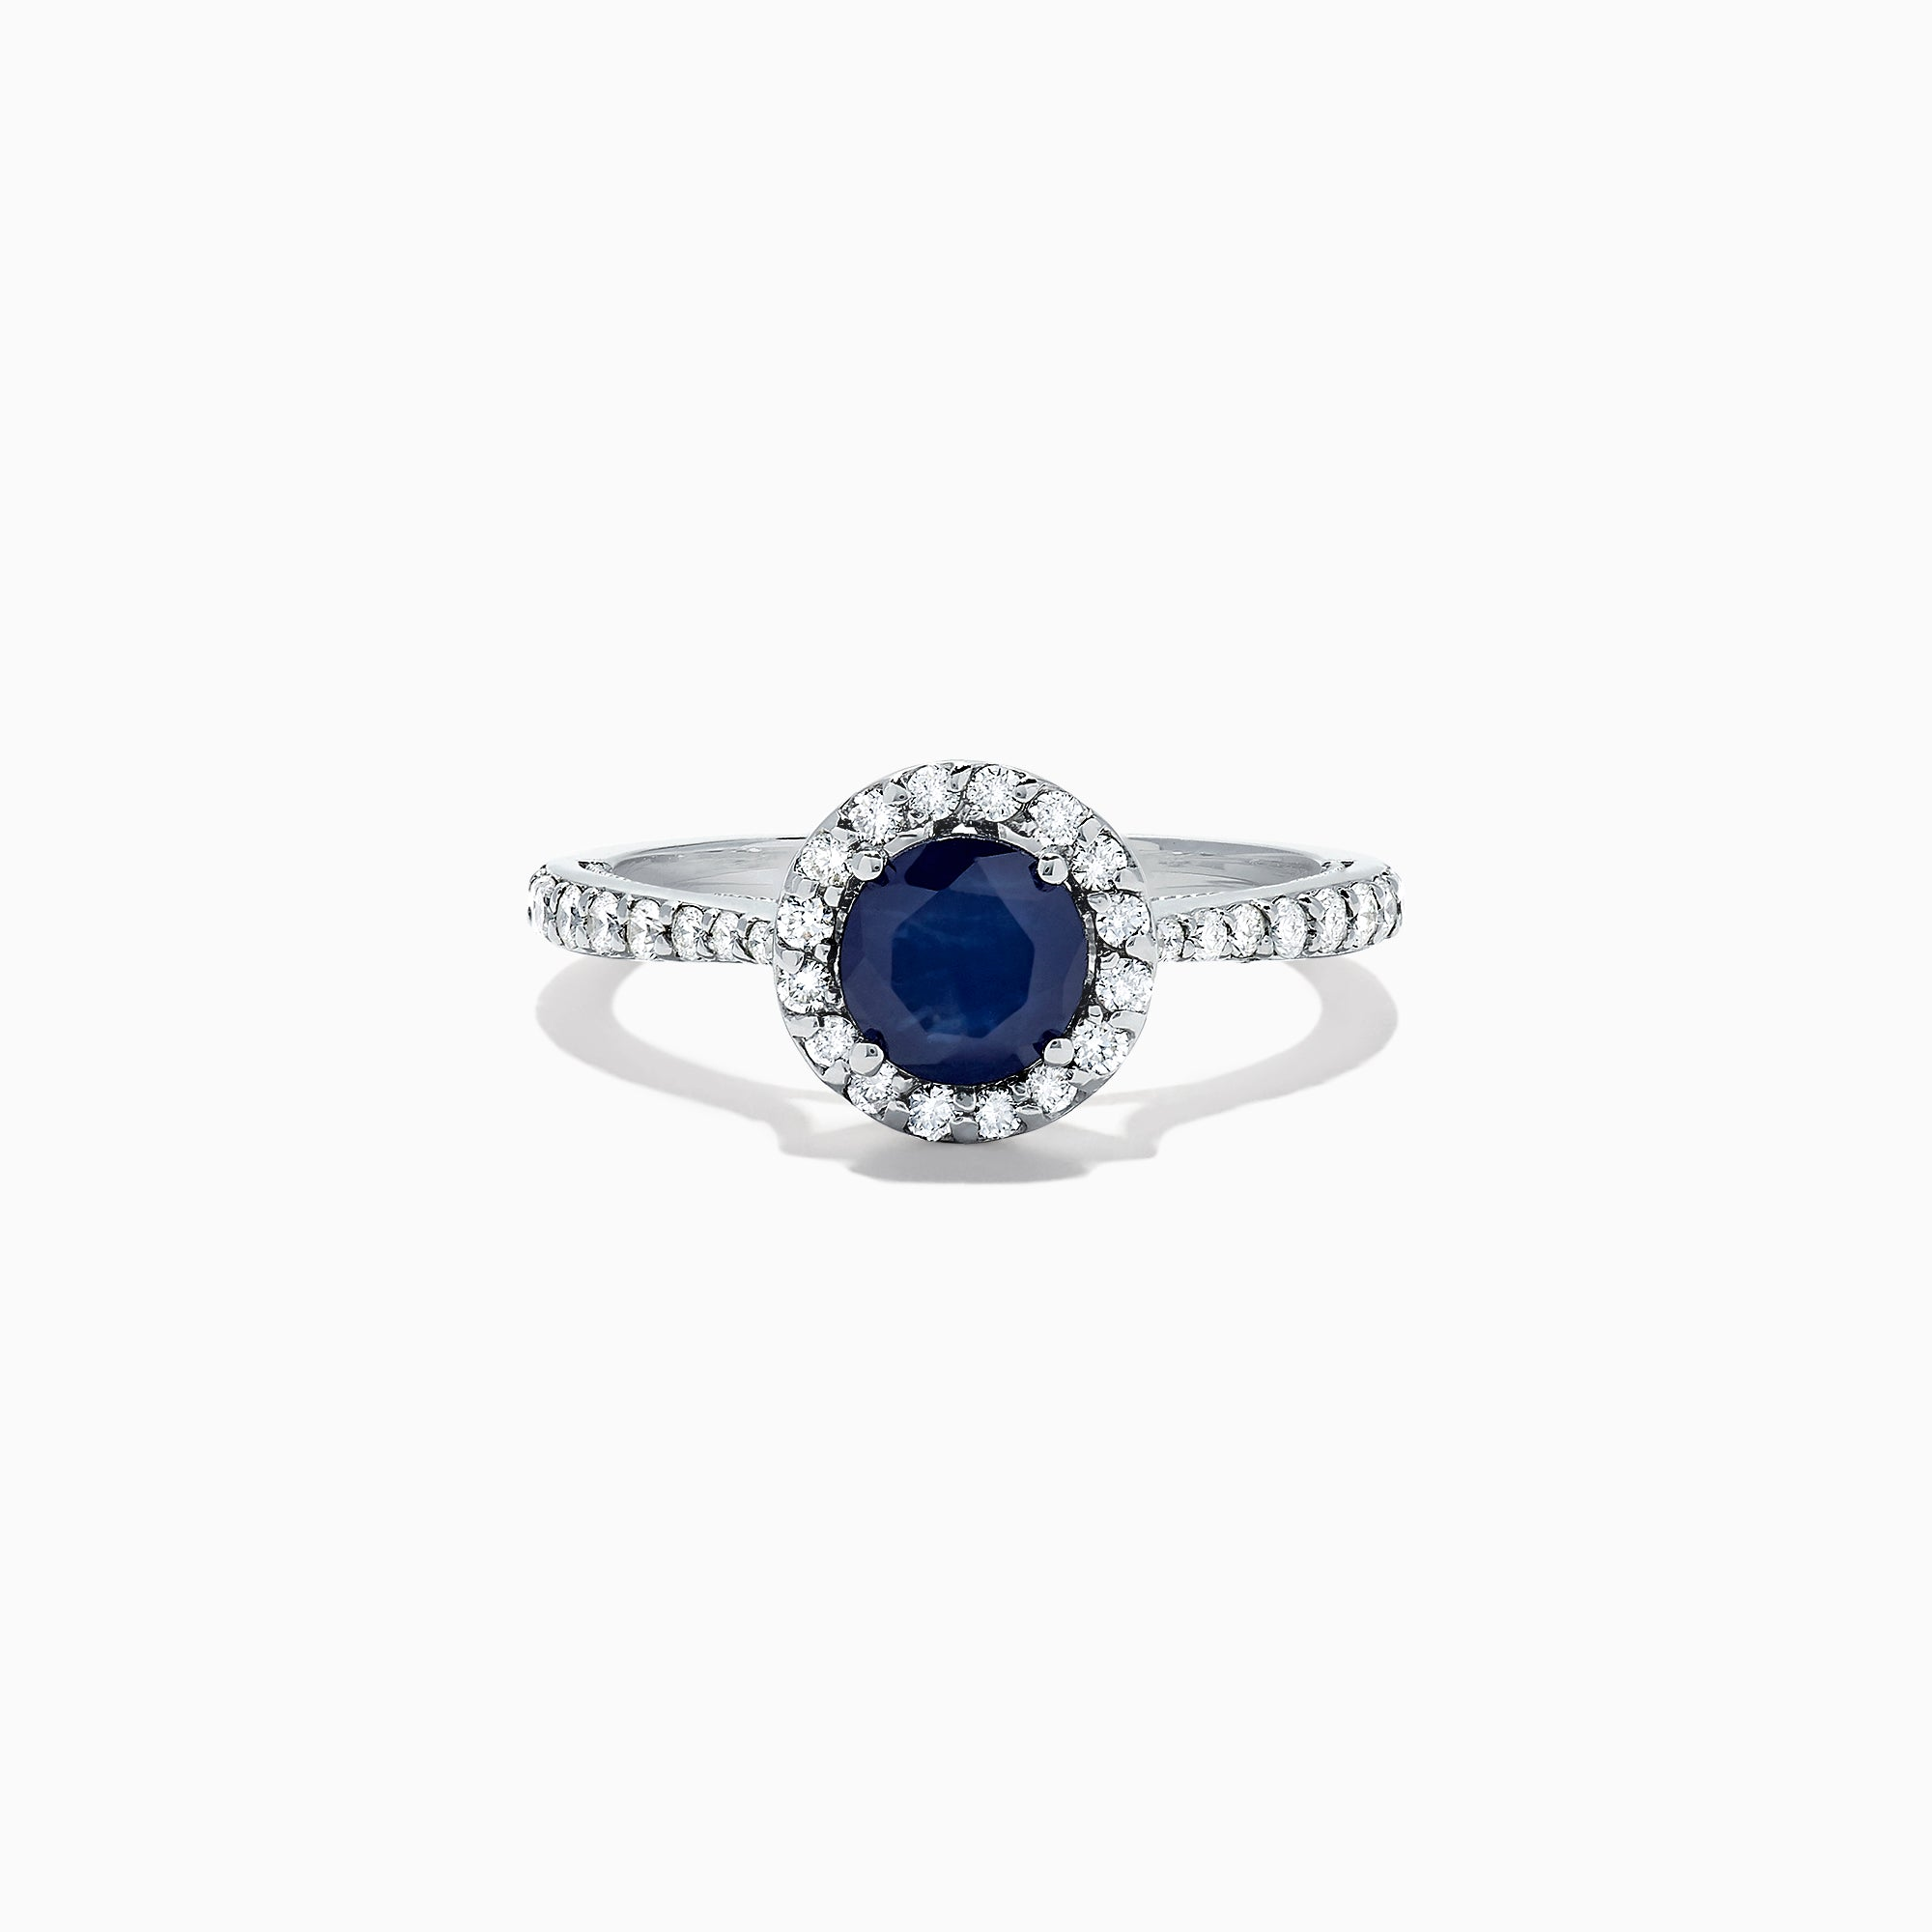 Effy Royale Bleu 14K White Gold Sapphire and Diamond Ring, 1.36 TCW